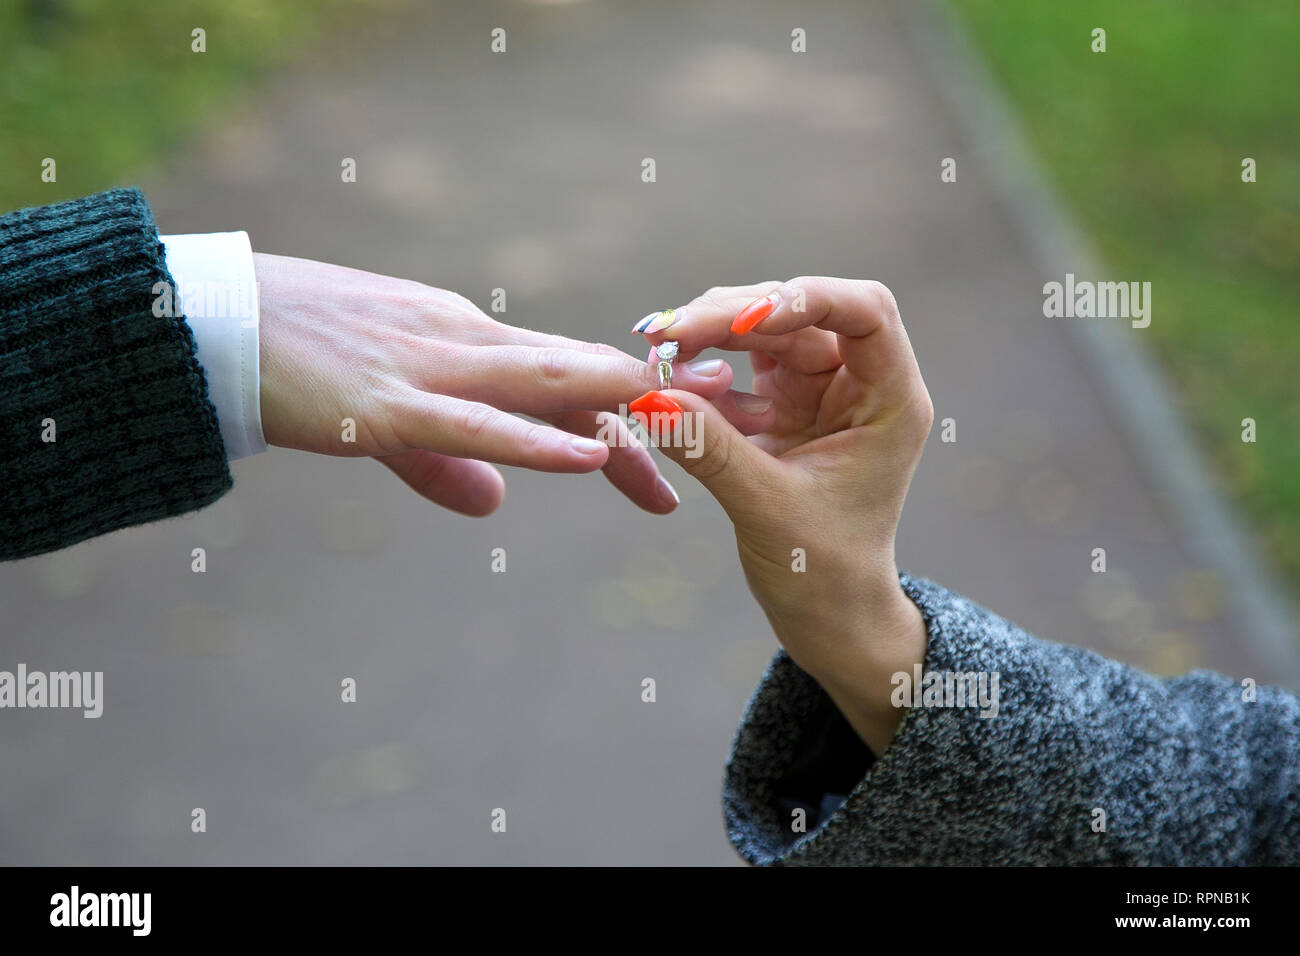 Close-up Of Woman's Hand Putting Golden Ring On Man's Finger - Stock Image